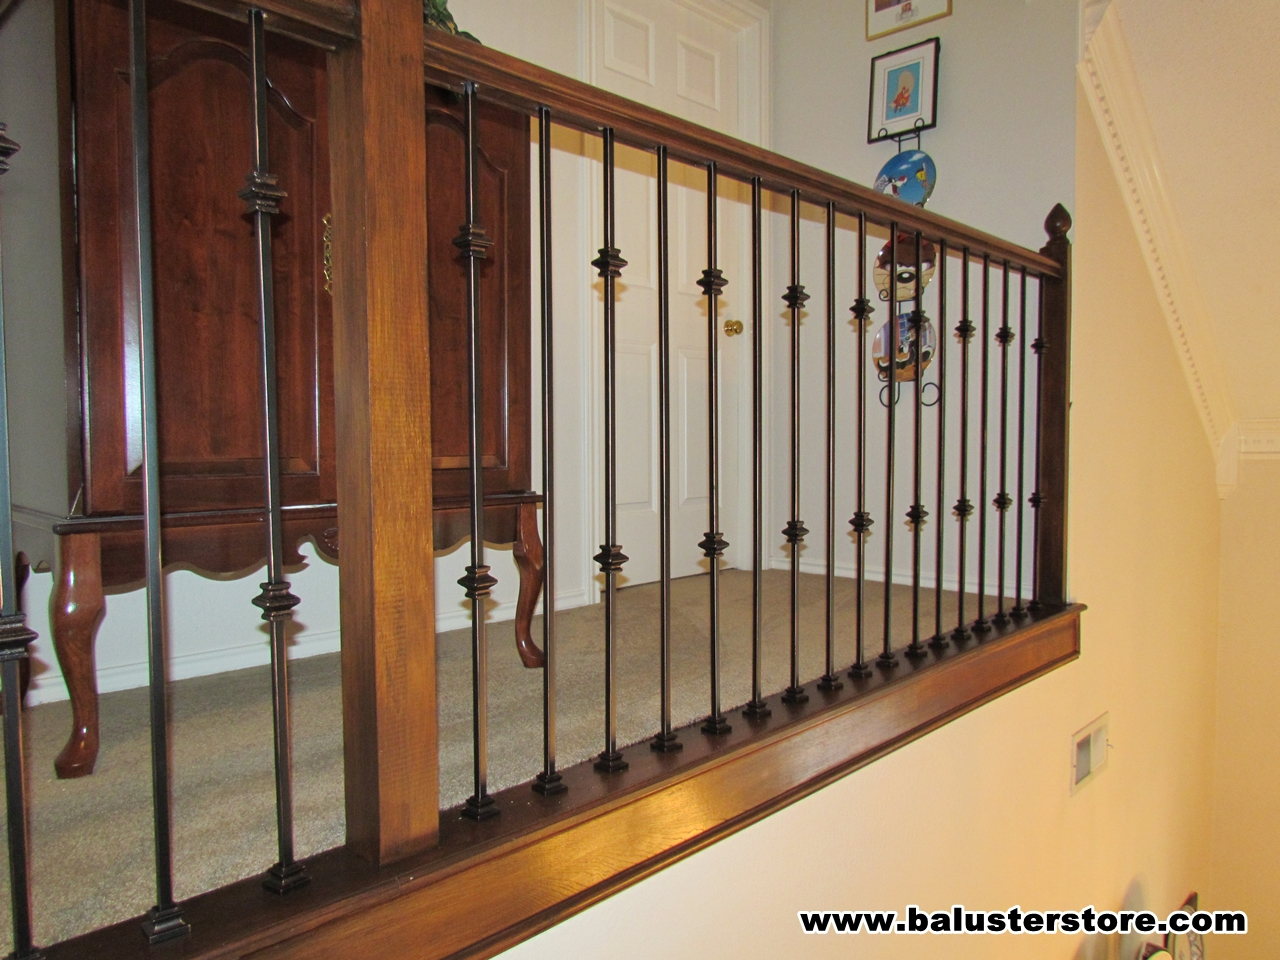 Double knuckle and plain balusters